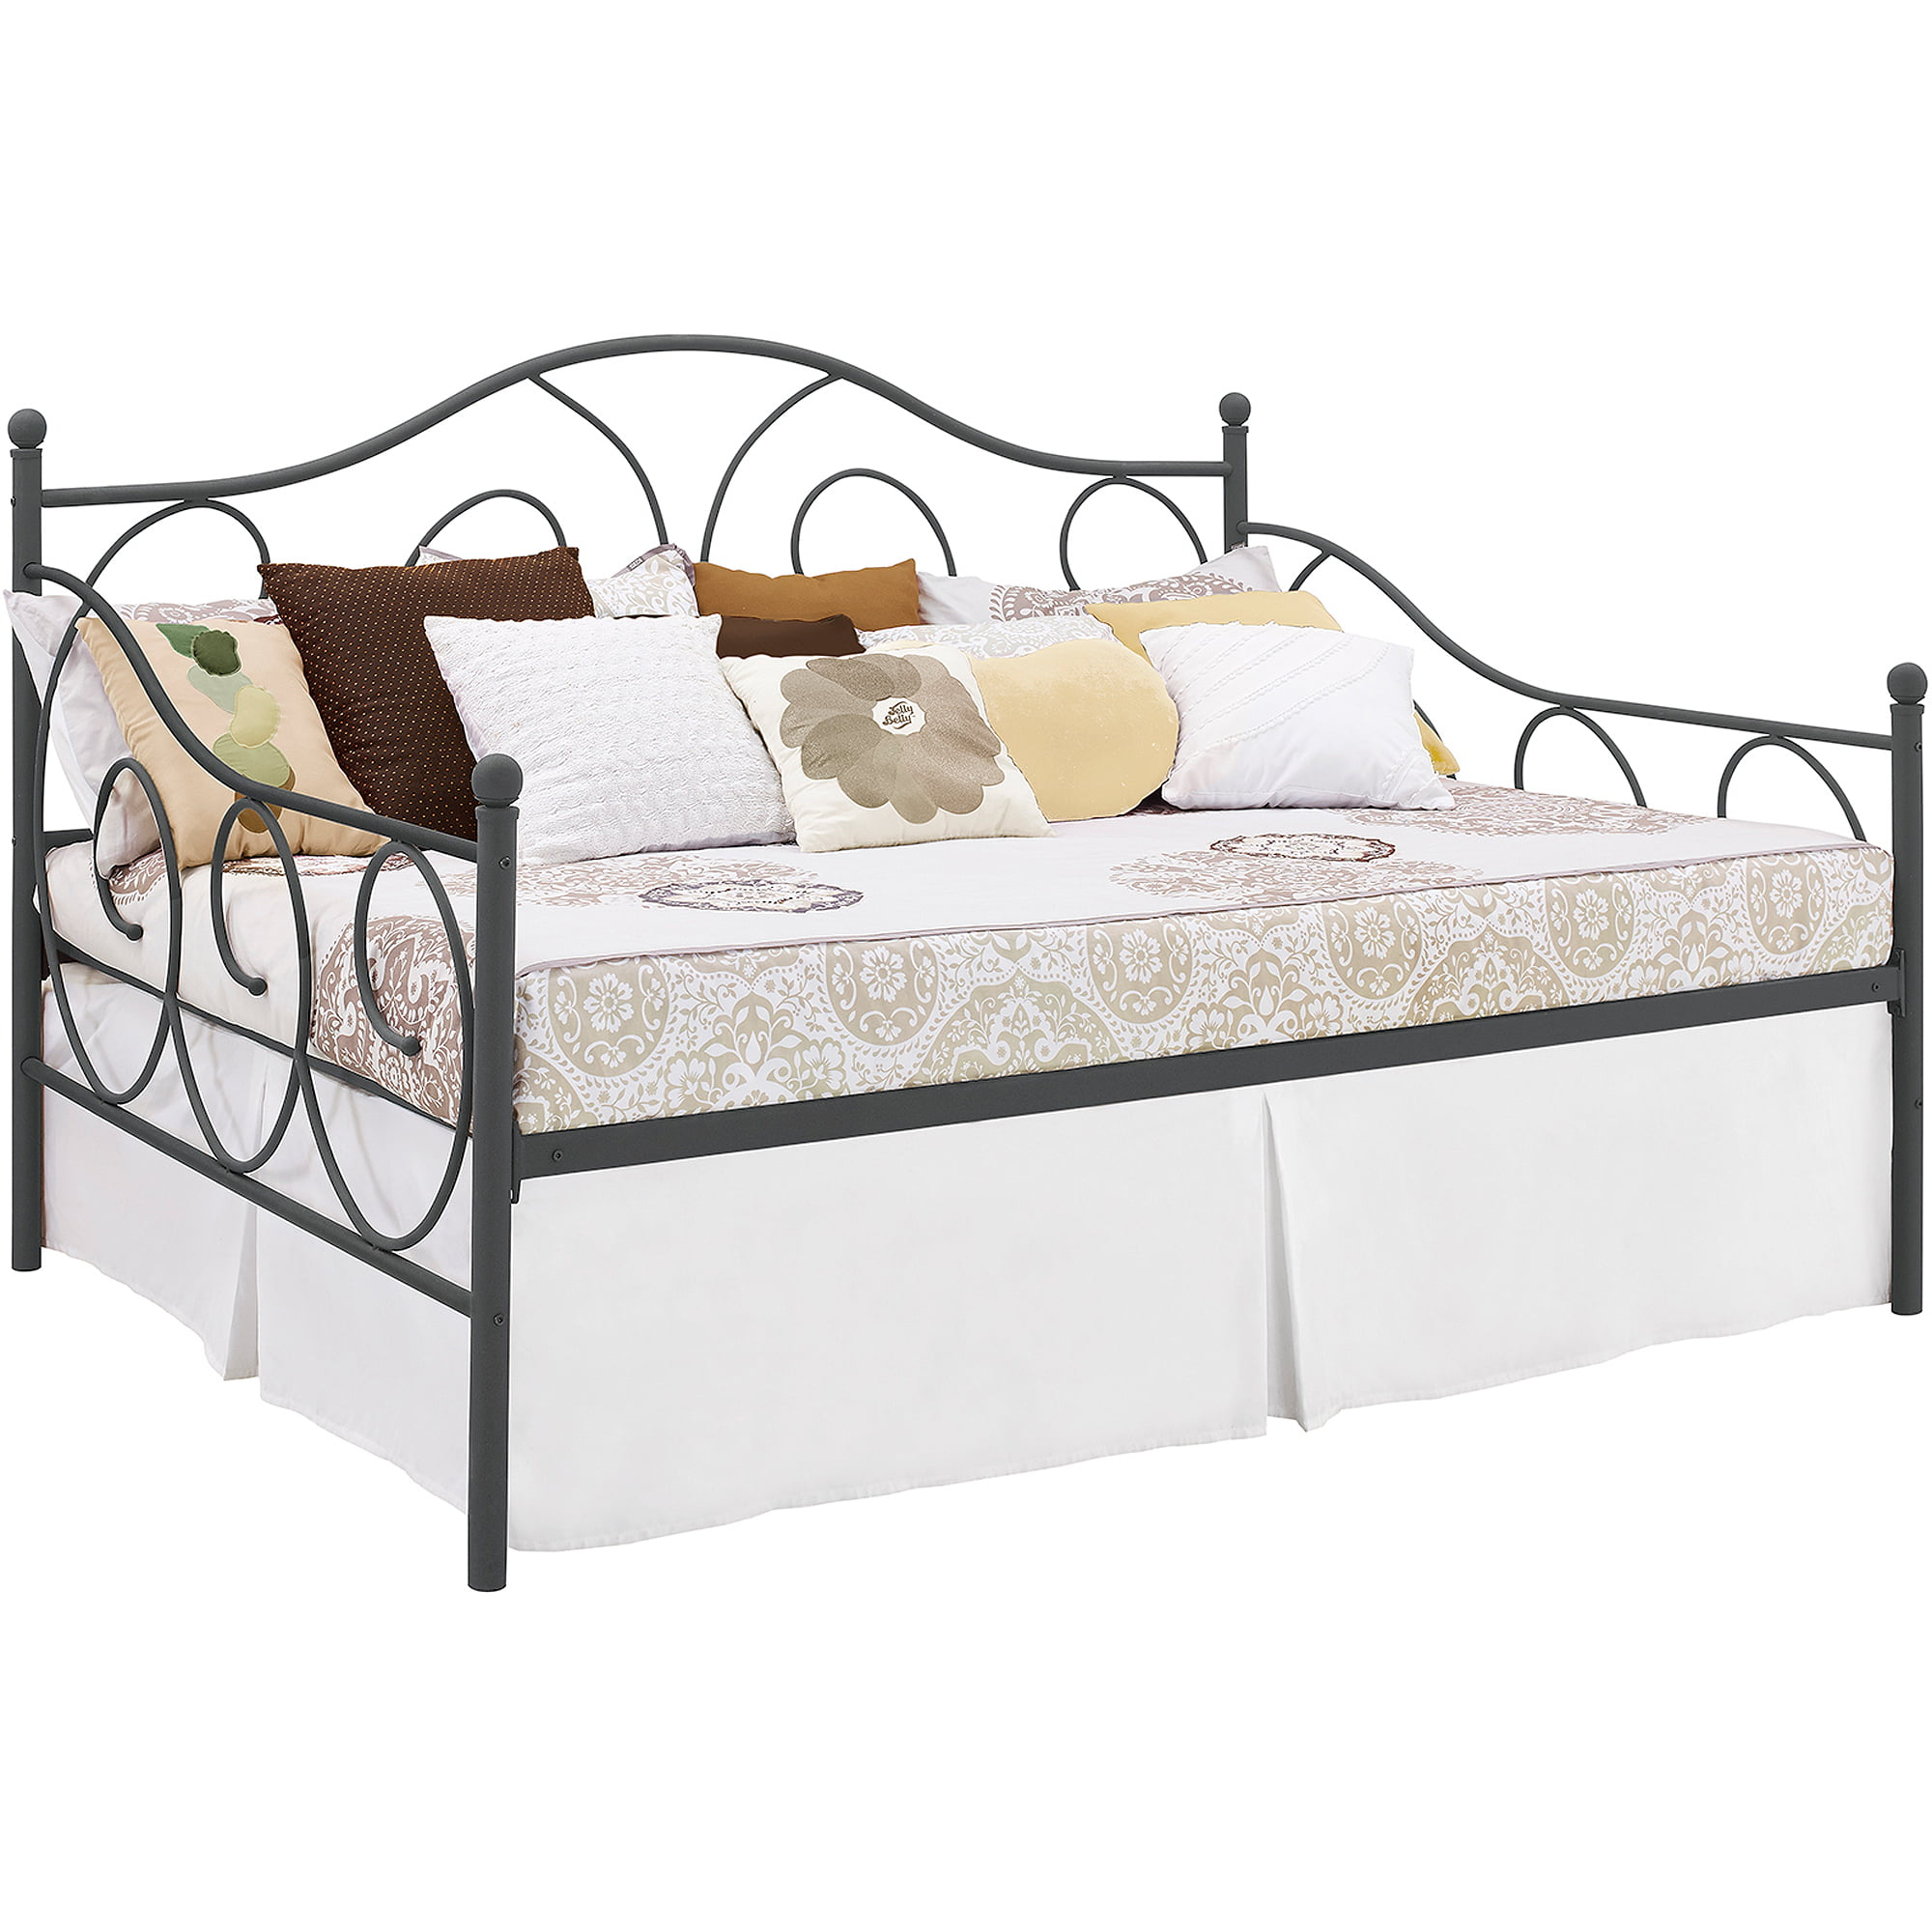 DHP Victoria Metal Daybed Finial Design, Full Size, Multiple Colors ...